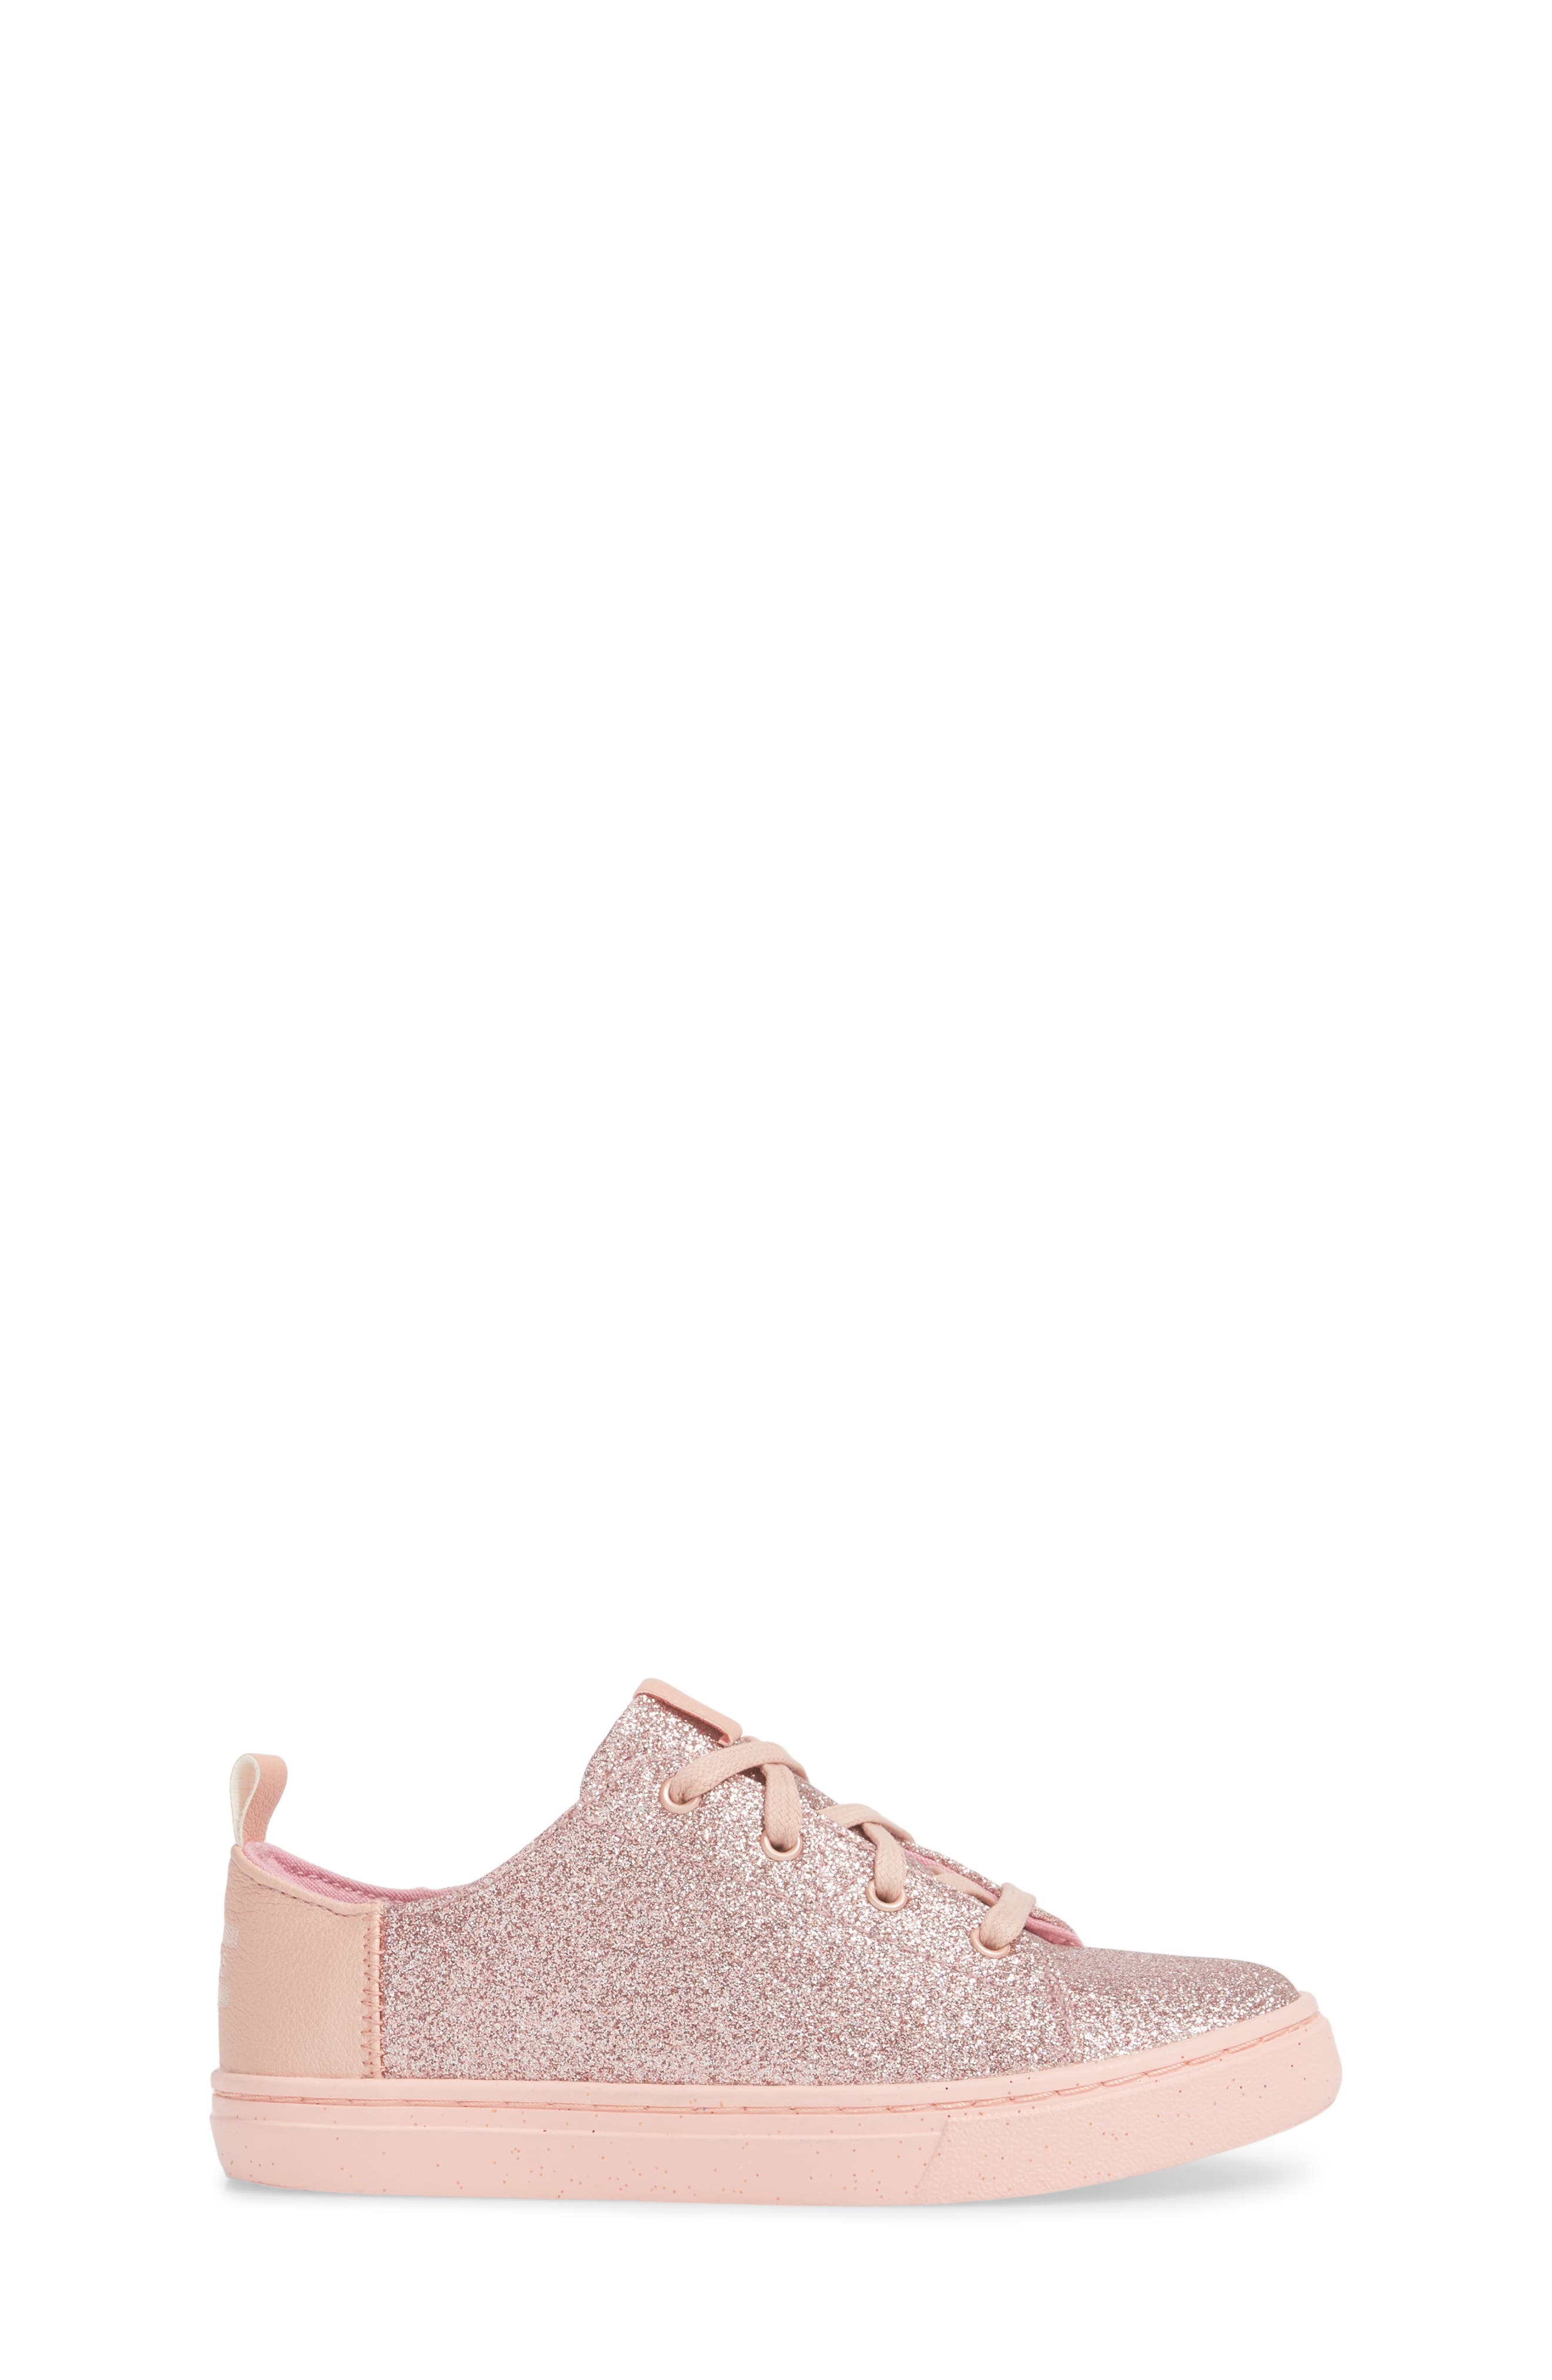 TOMS,                             Lenny Metallic Glitter Sneaker,                             Alternate thumbnail 3, color,                             650